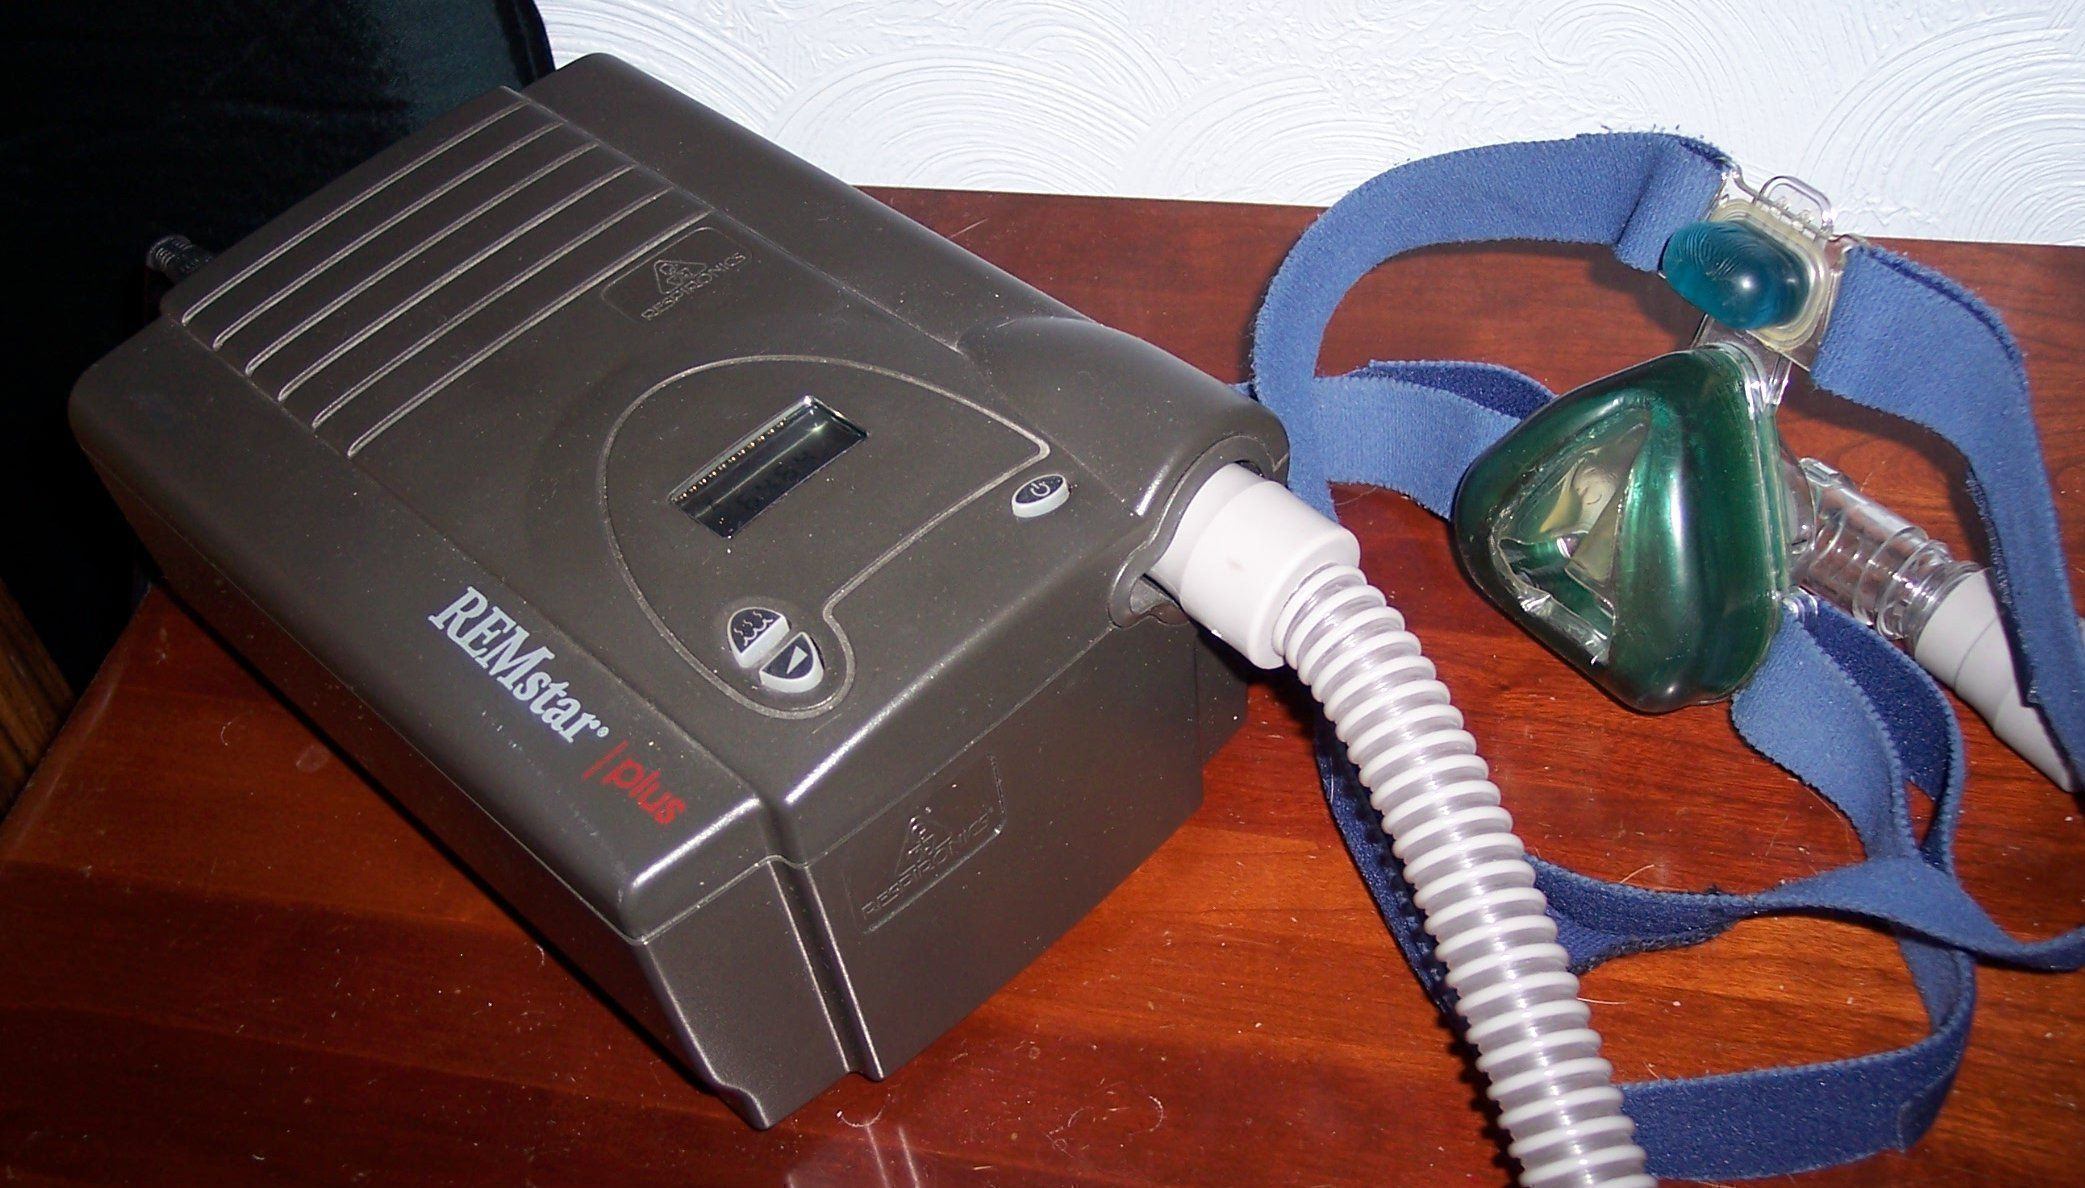 A typical CPAP machine houses the air pump in a case lined with sound-absorbing material for quieter operation. A hose carries the pressurized air to a face mask or nasal pillow.